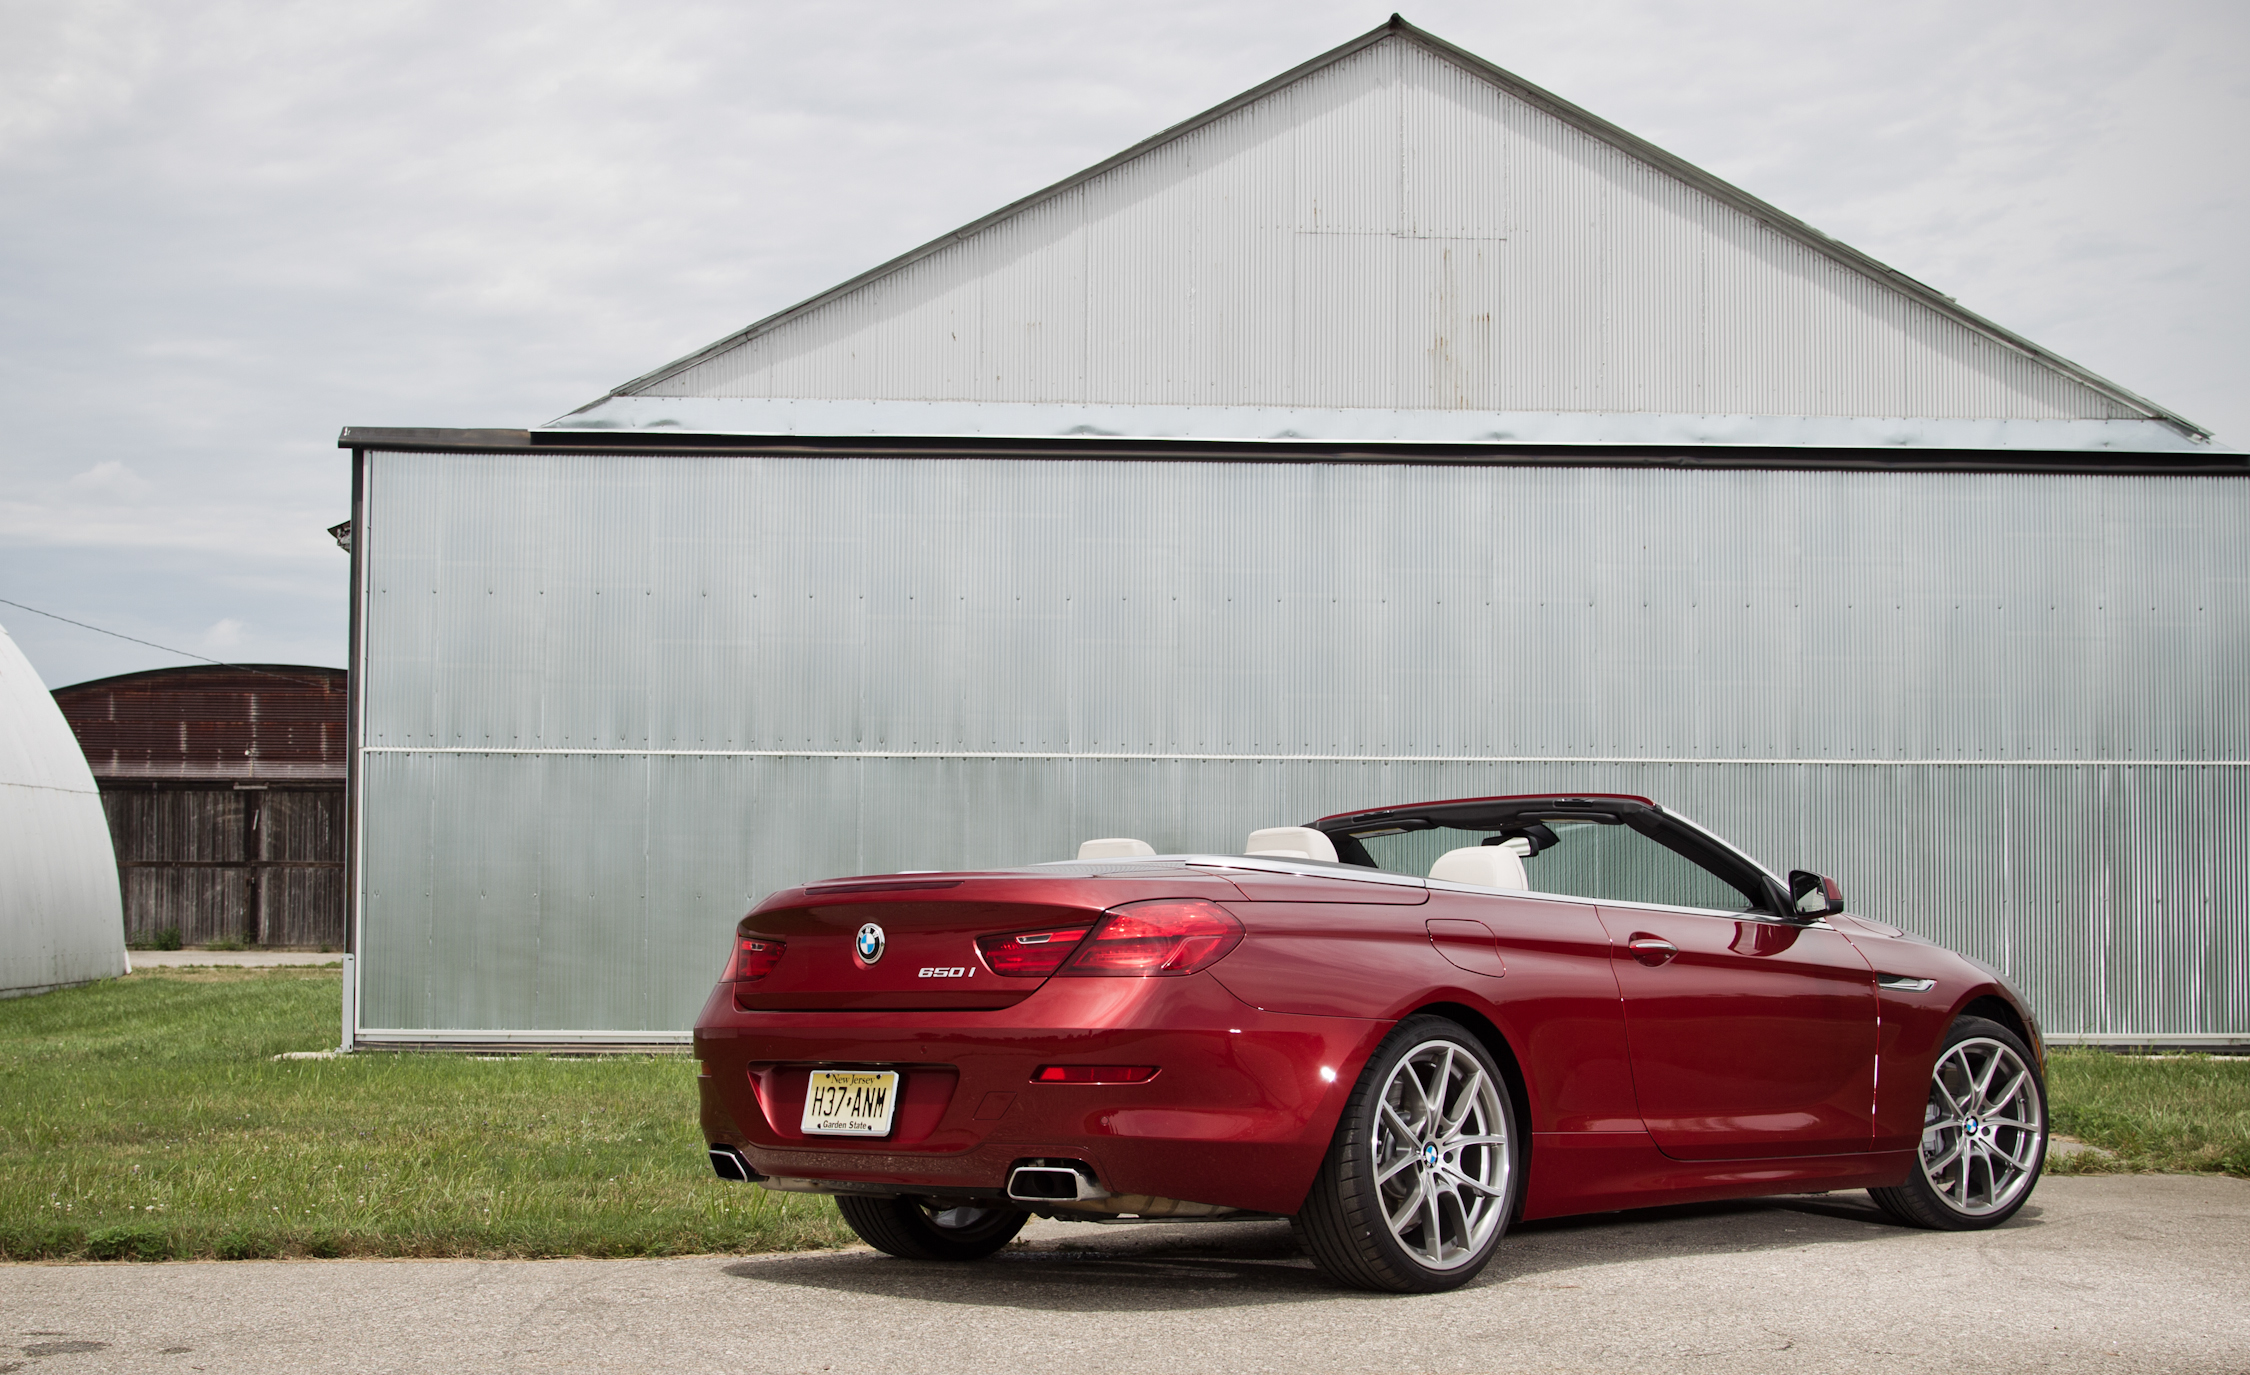 2012 BMW 650i Convertible Exterior Rear And Side (Photo 5 of 19)